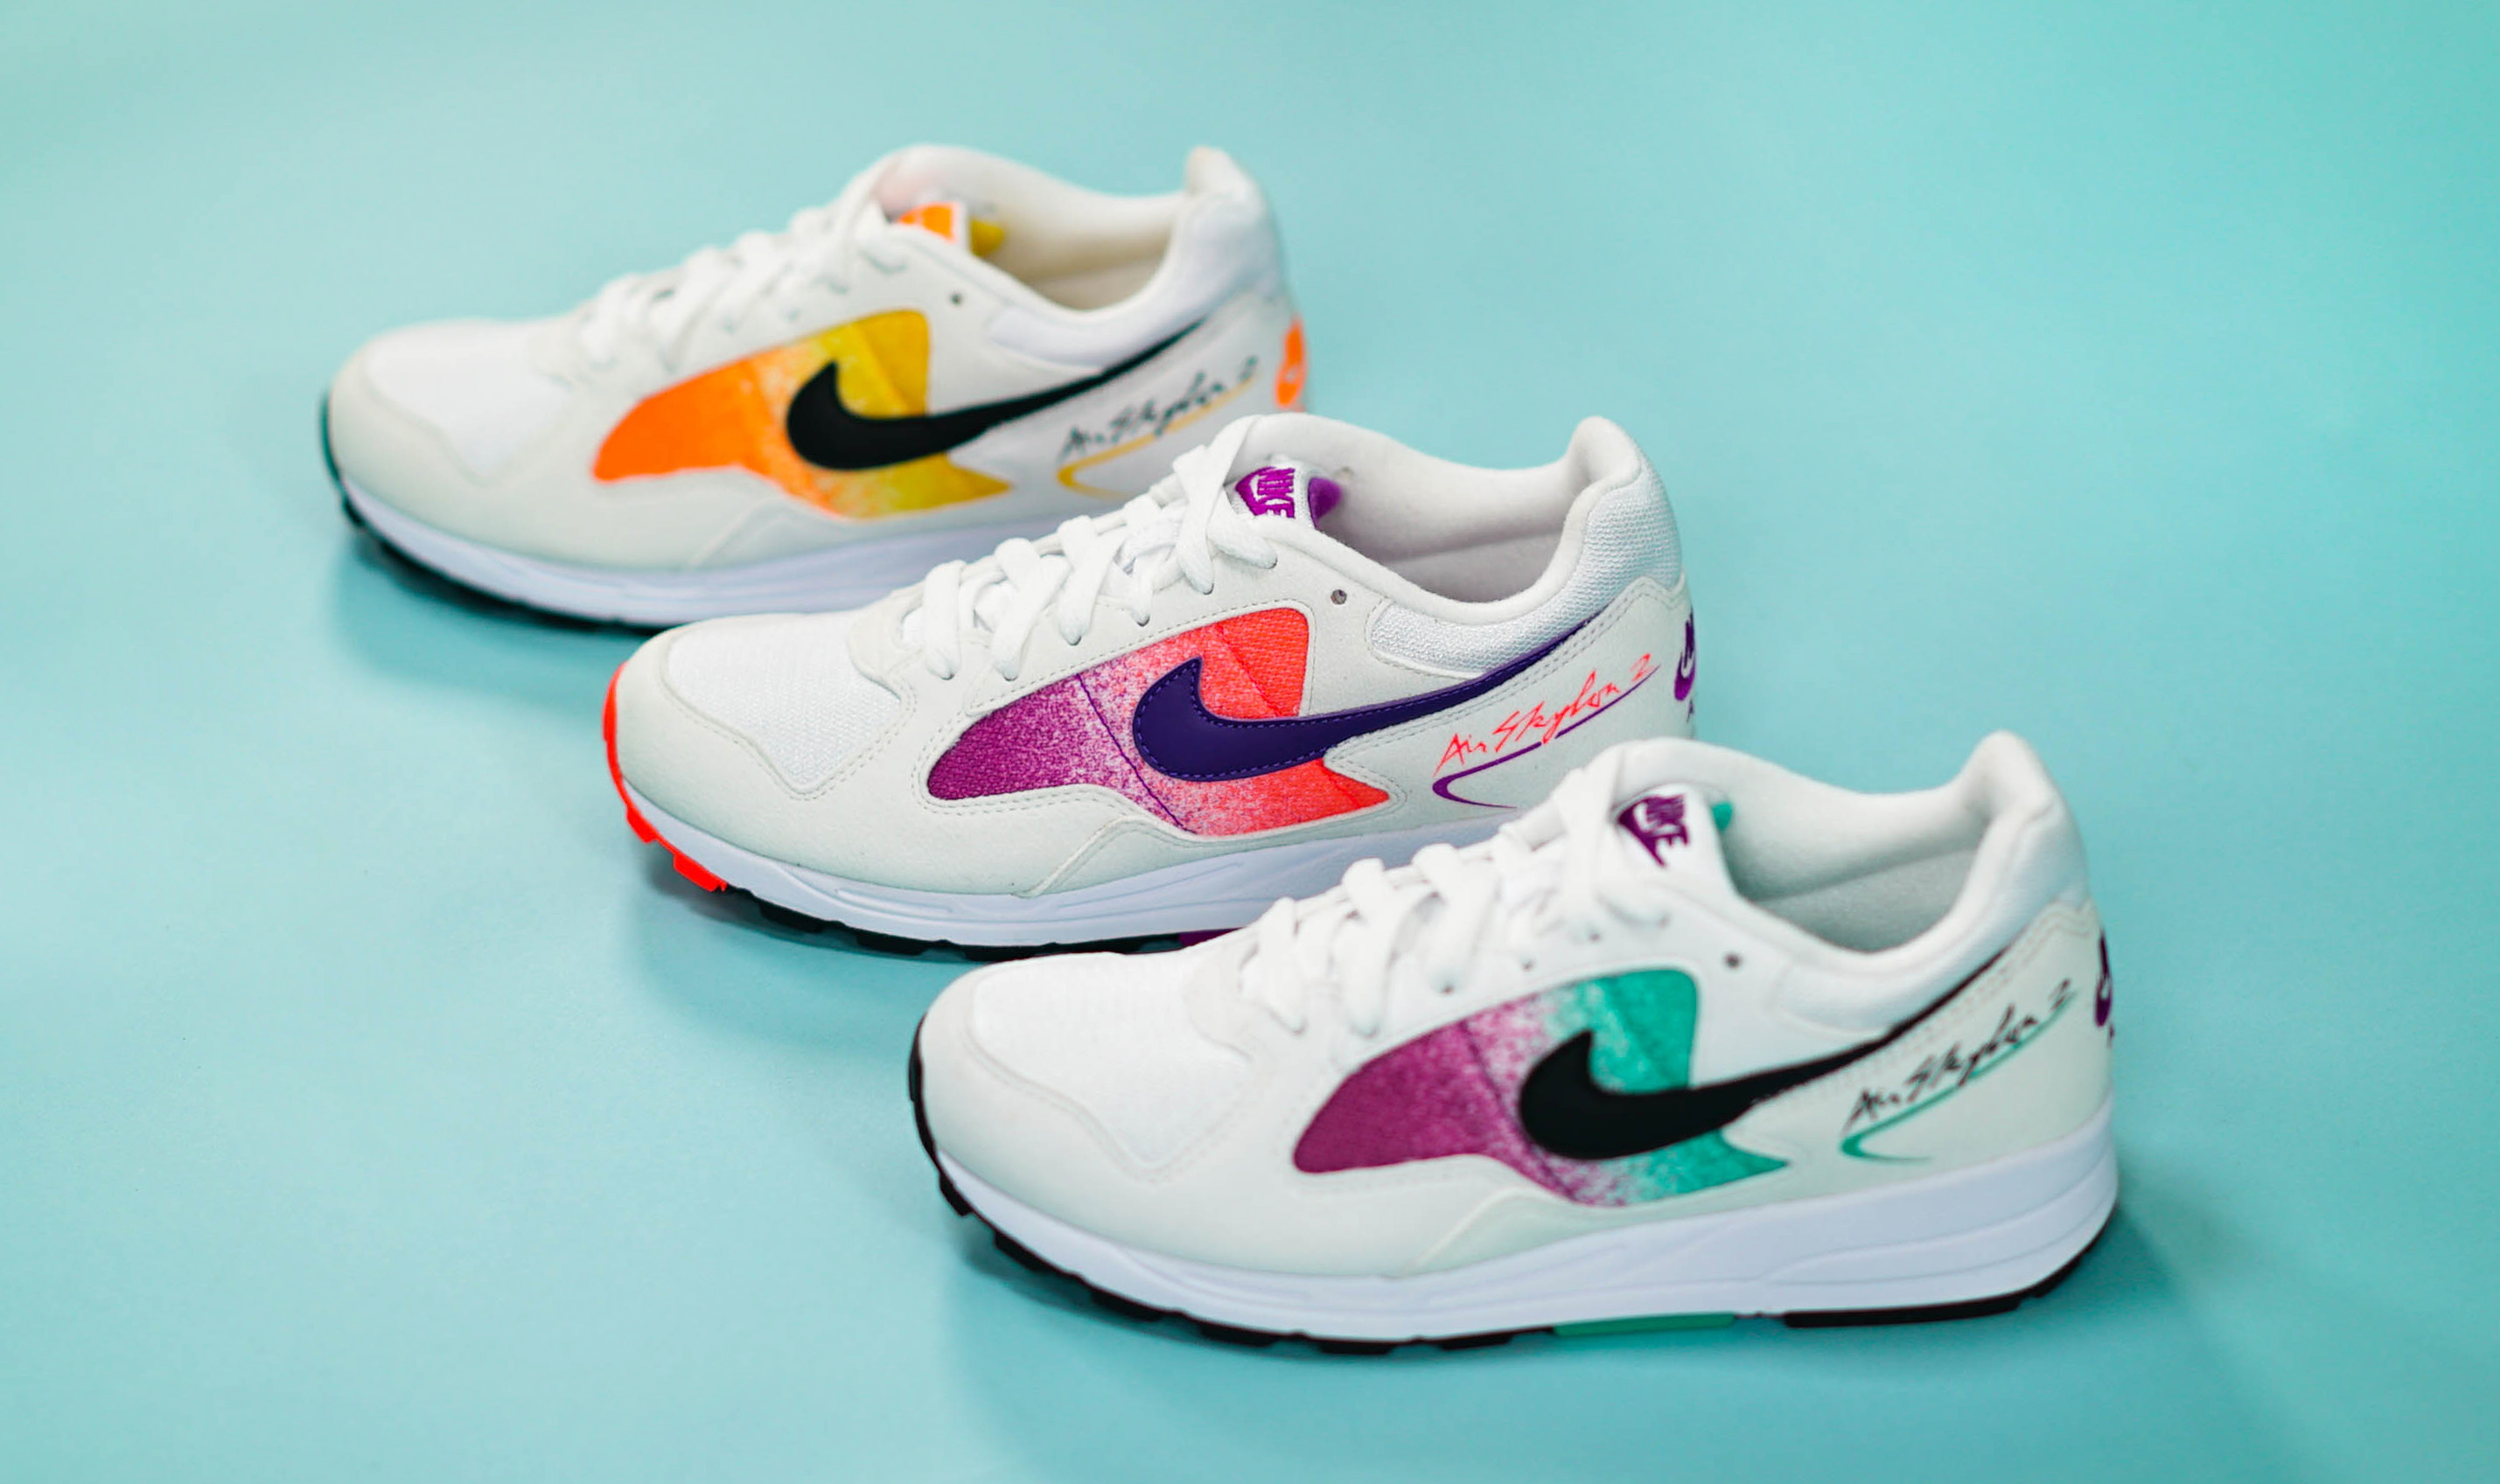 Styling: Nike Air Skylon 2